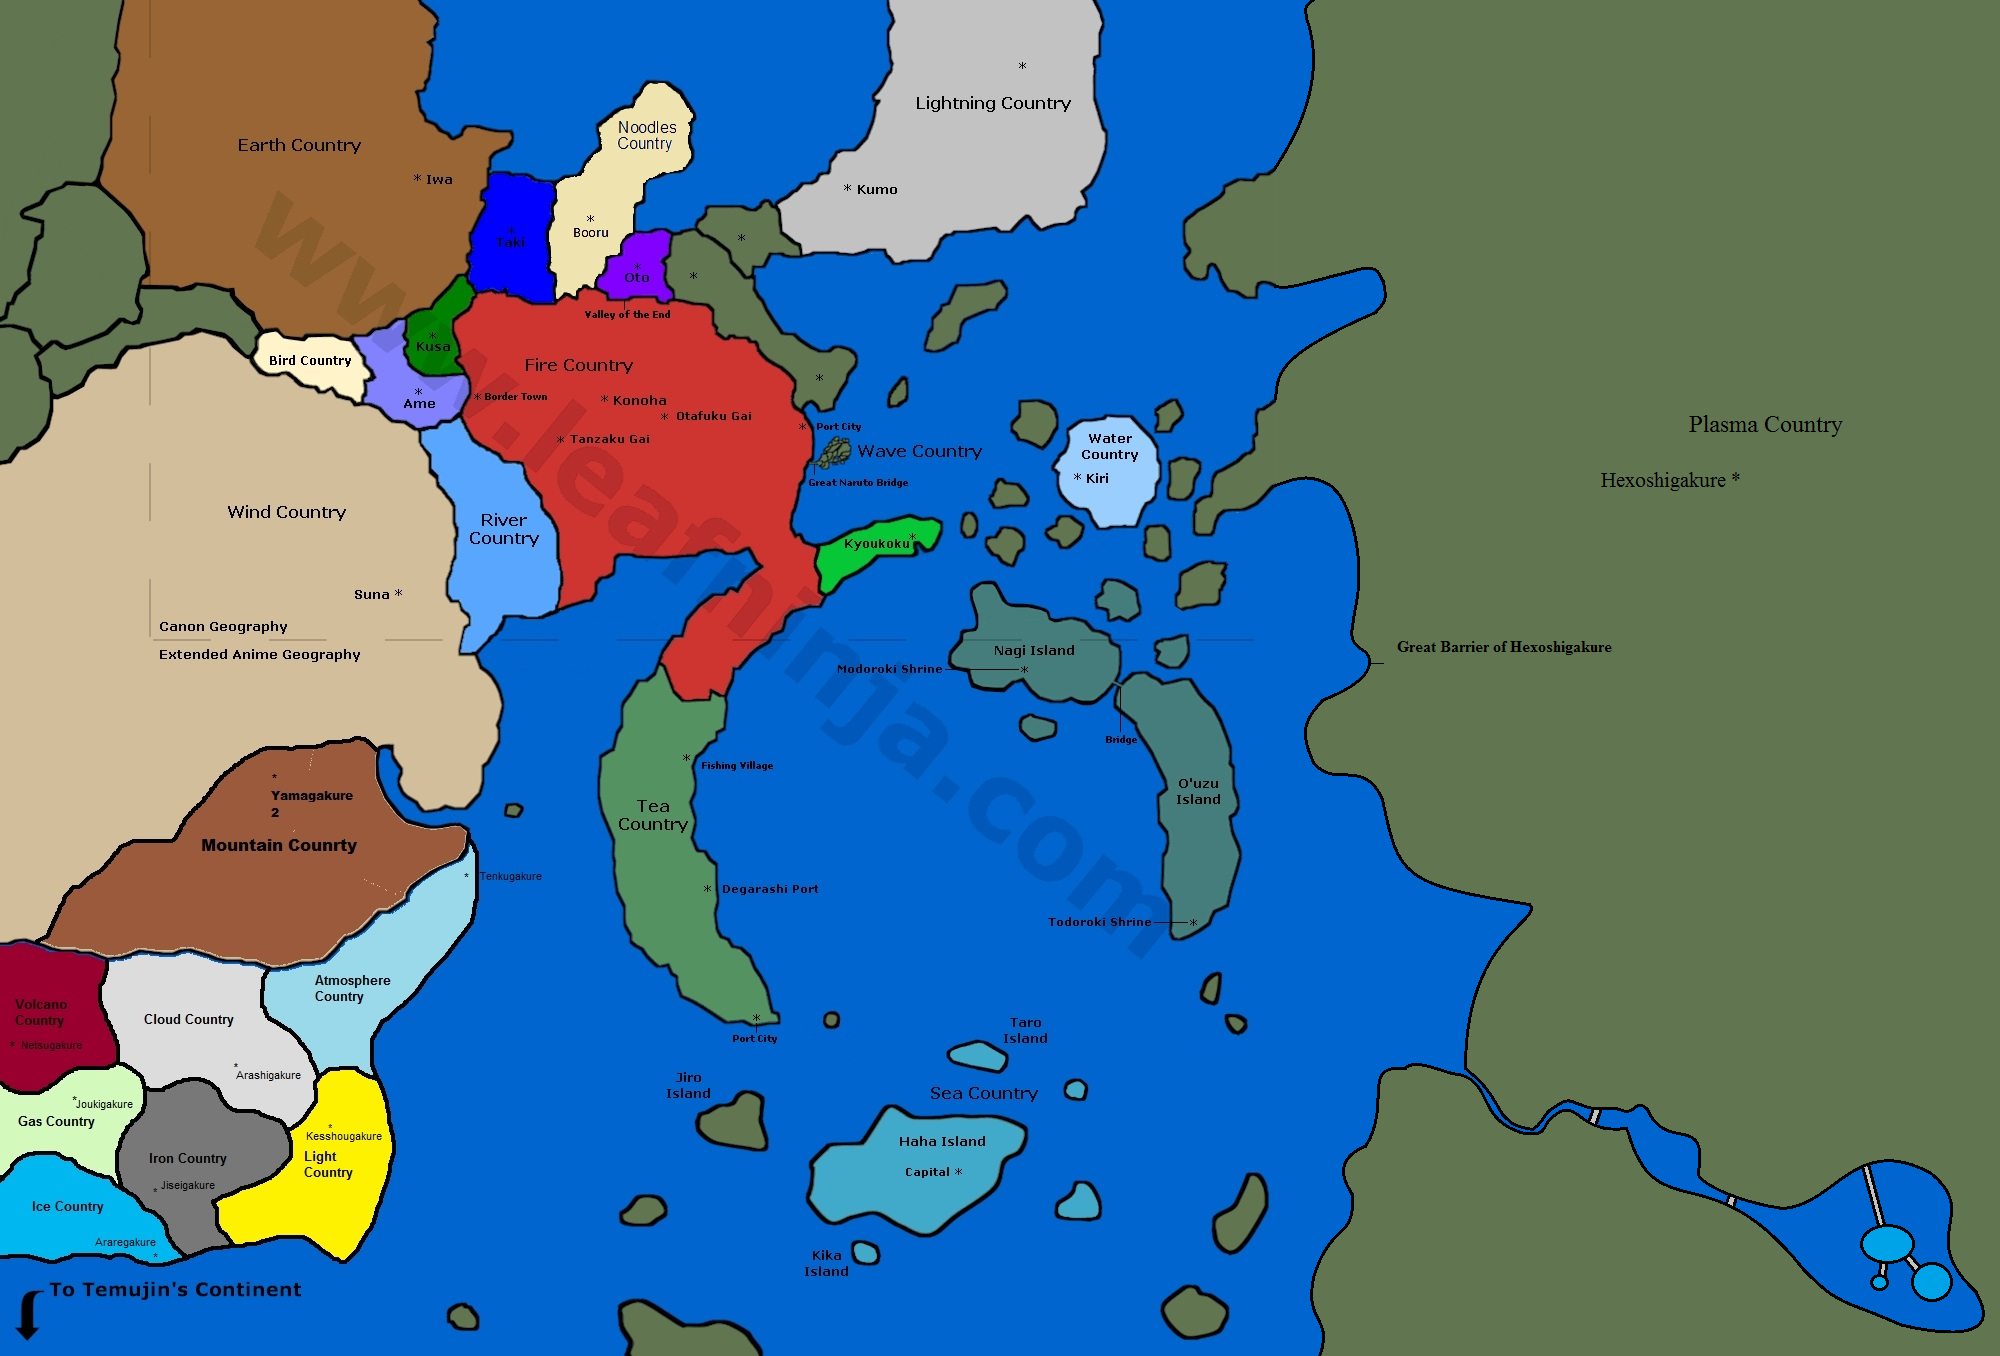 Image World Map Version Png Naruto Fanon Wiki FANDOM - World map with countries and capitals wiki